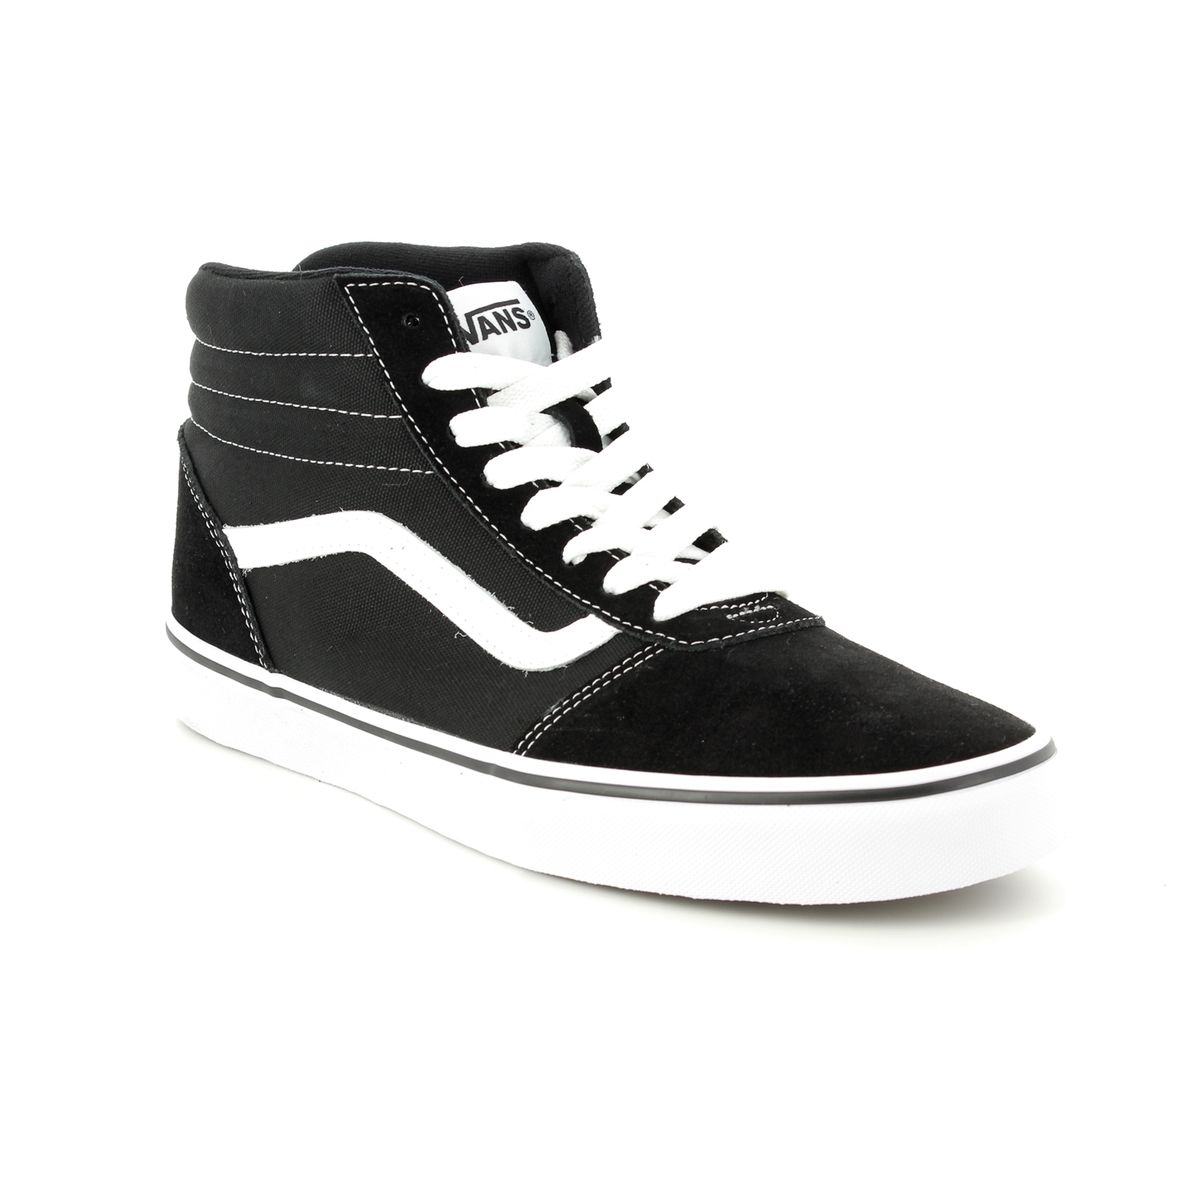 f2431e53a1bd Vans Trainers - Black - VA36ENC4R 30 WARD HI TOP